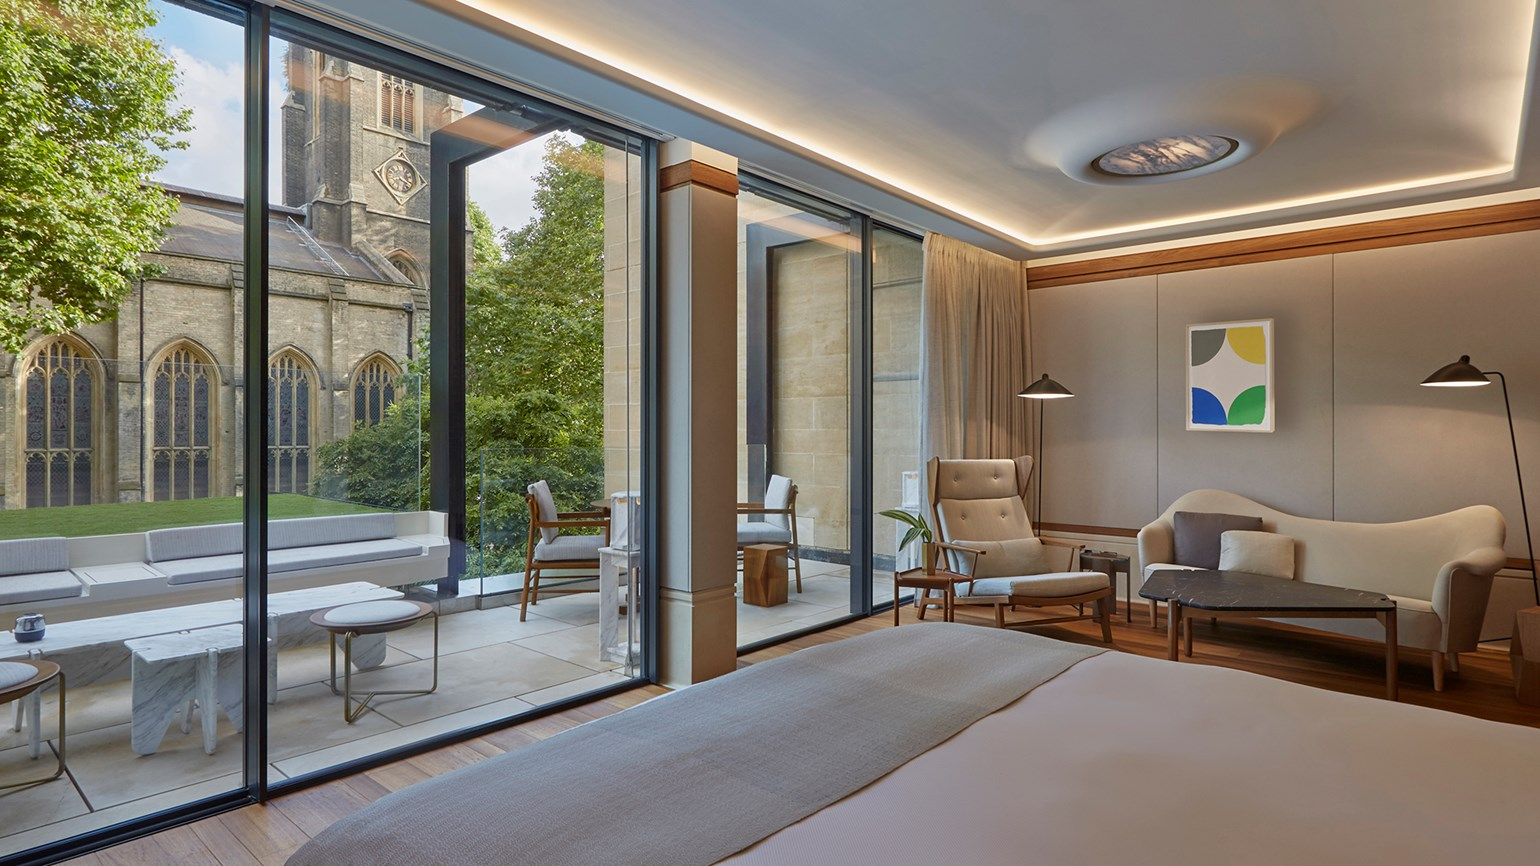 London S Berkeley Hotel Renovation Includes New Suites Travel Weekly